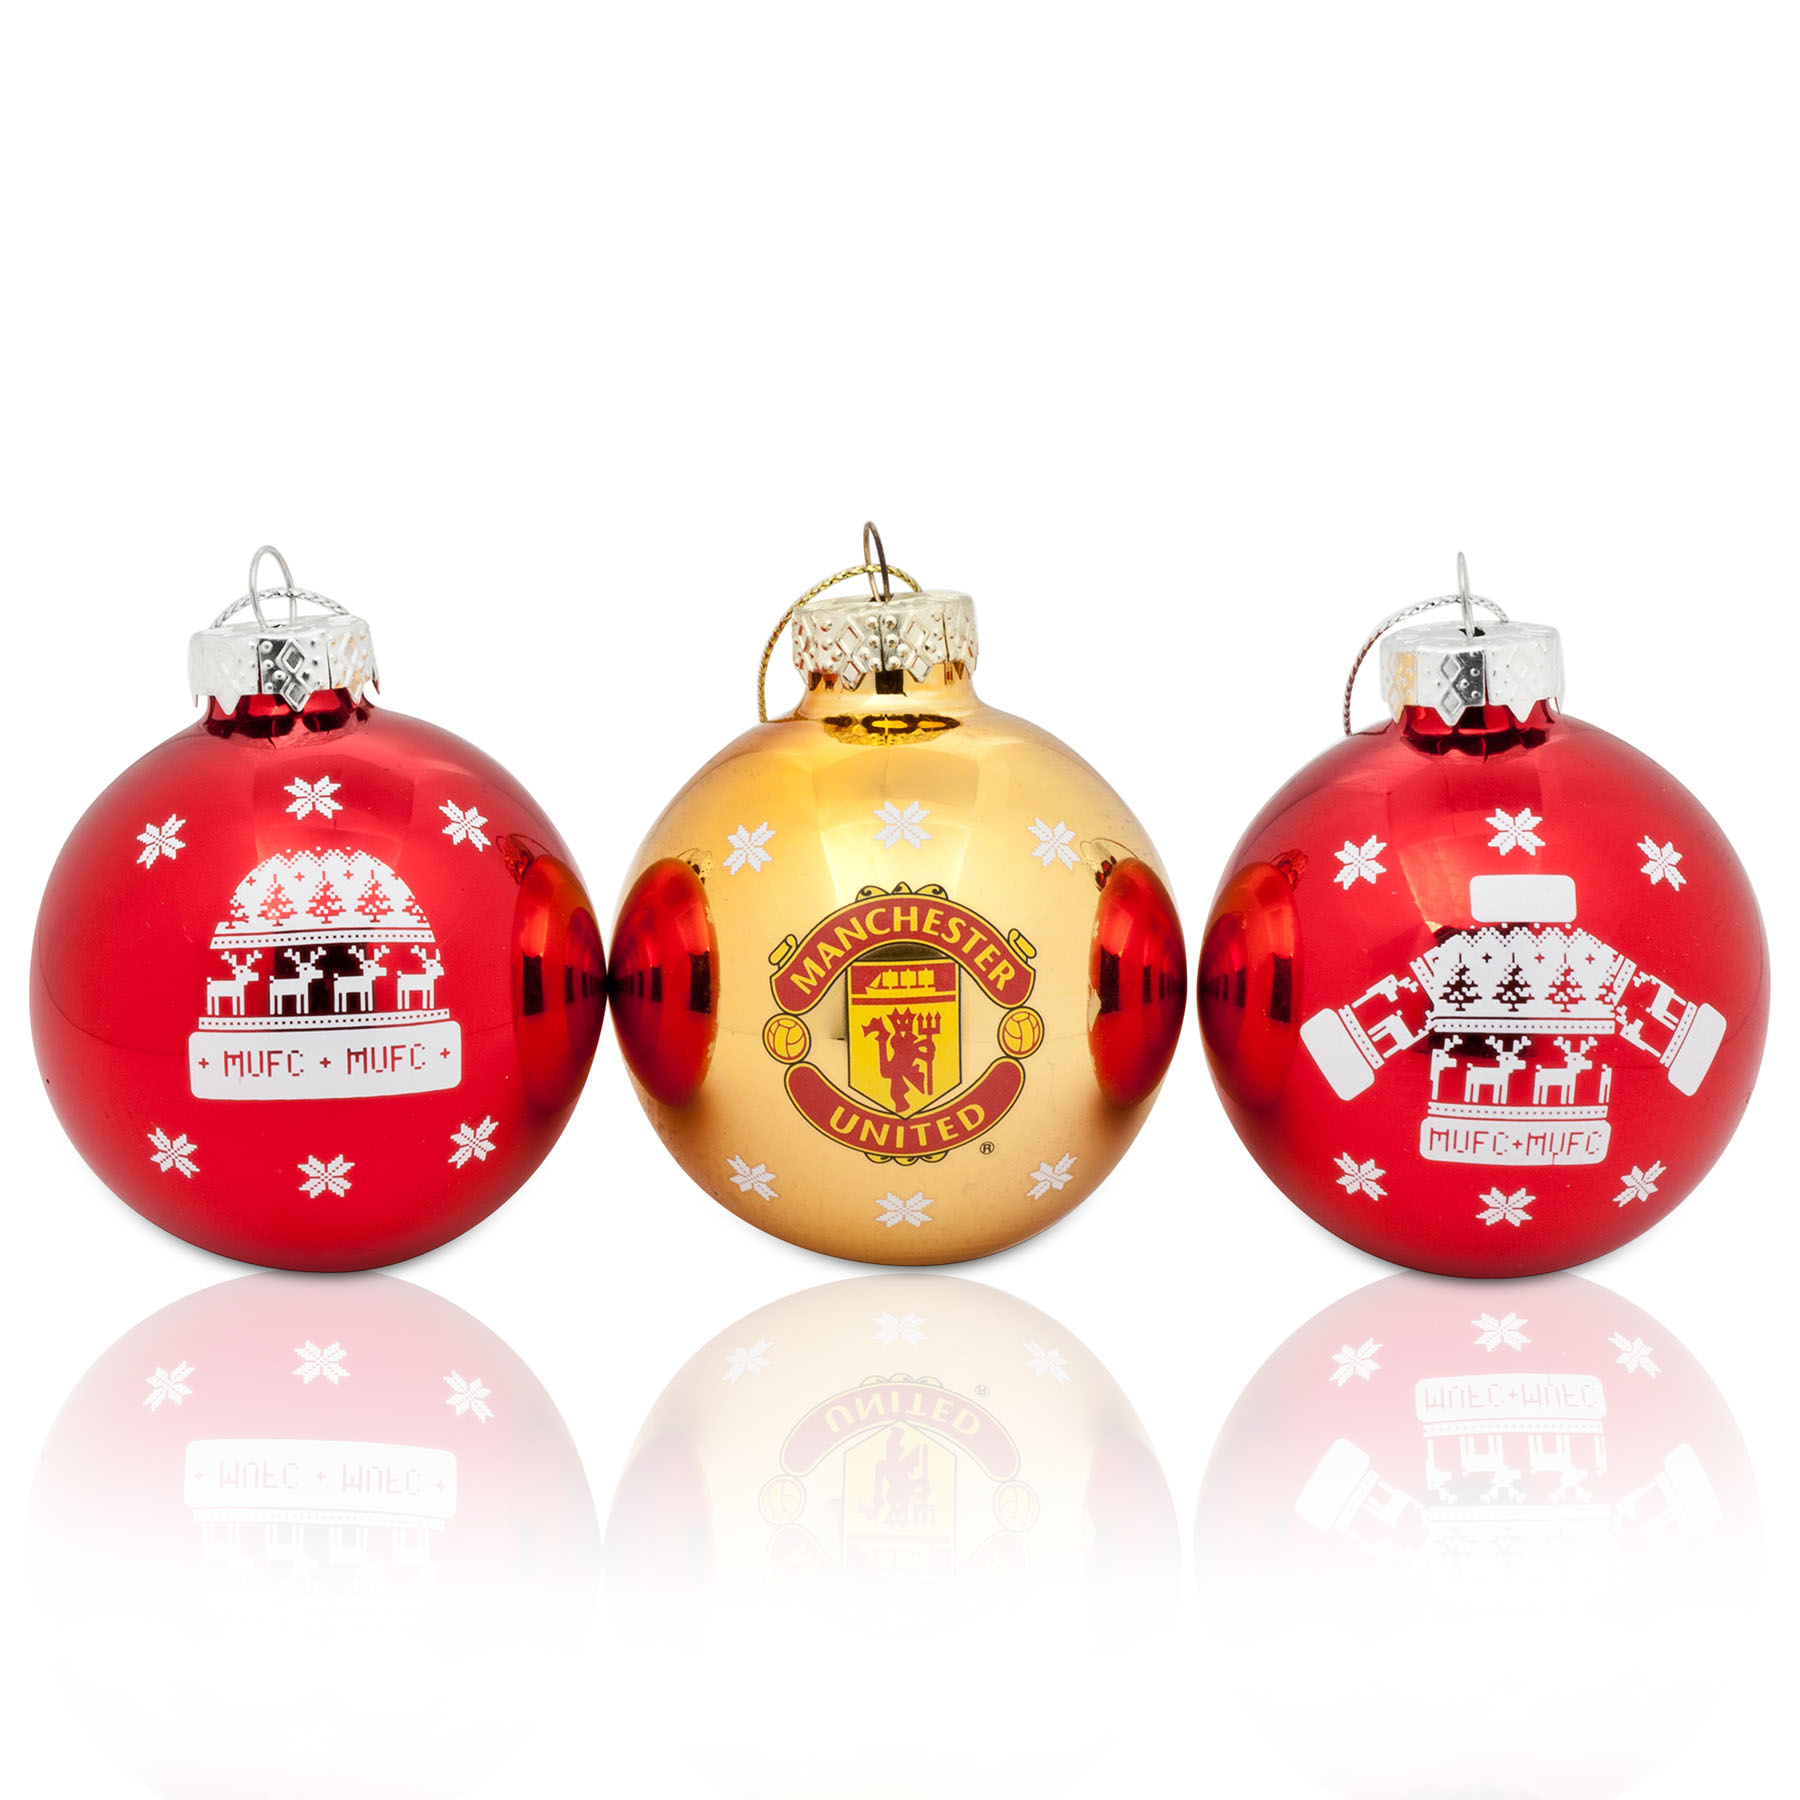 Manchester United Christmas Nordic 60mm Baubles - 3 Pack